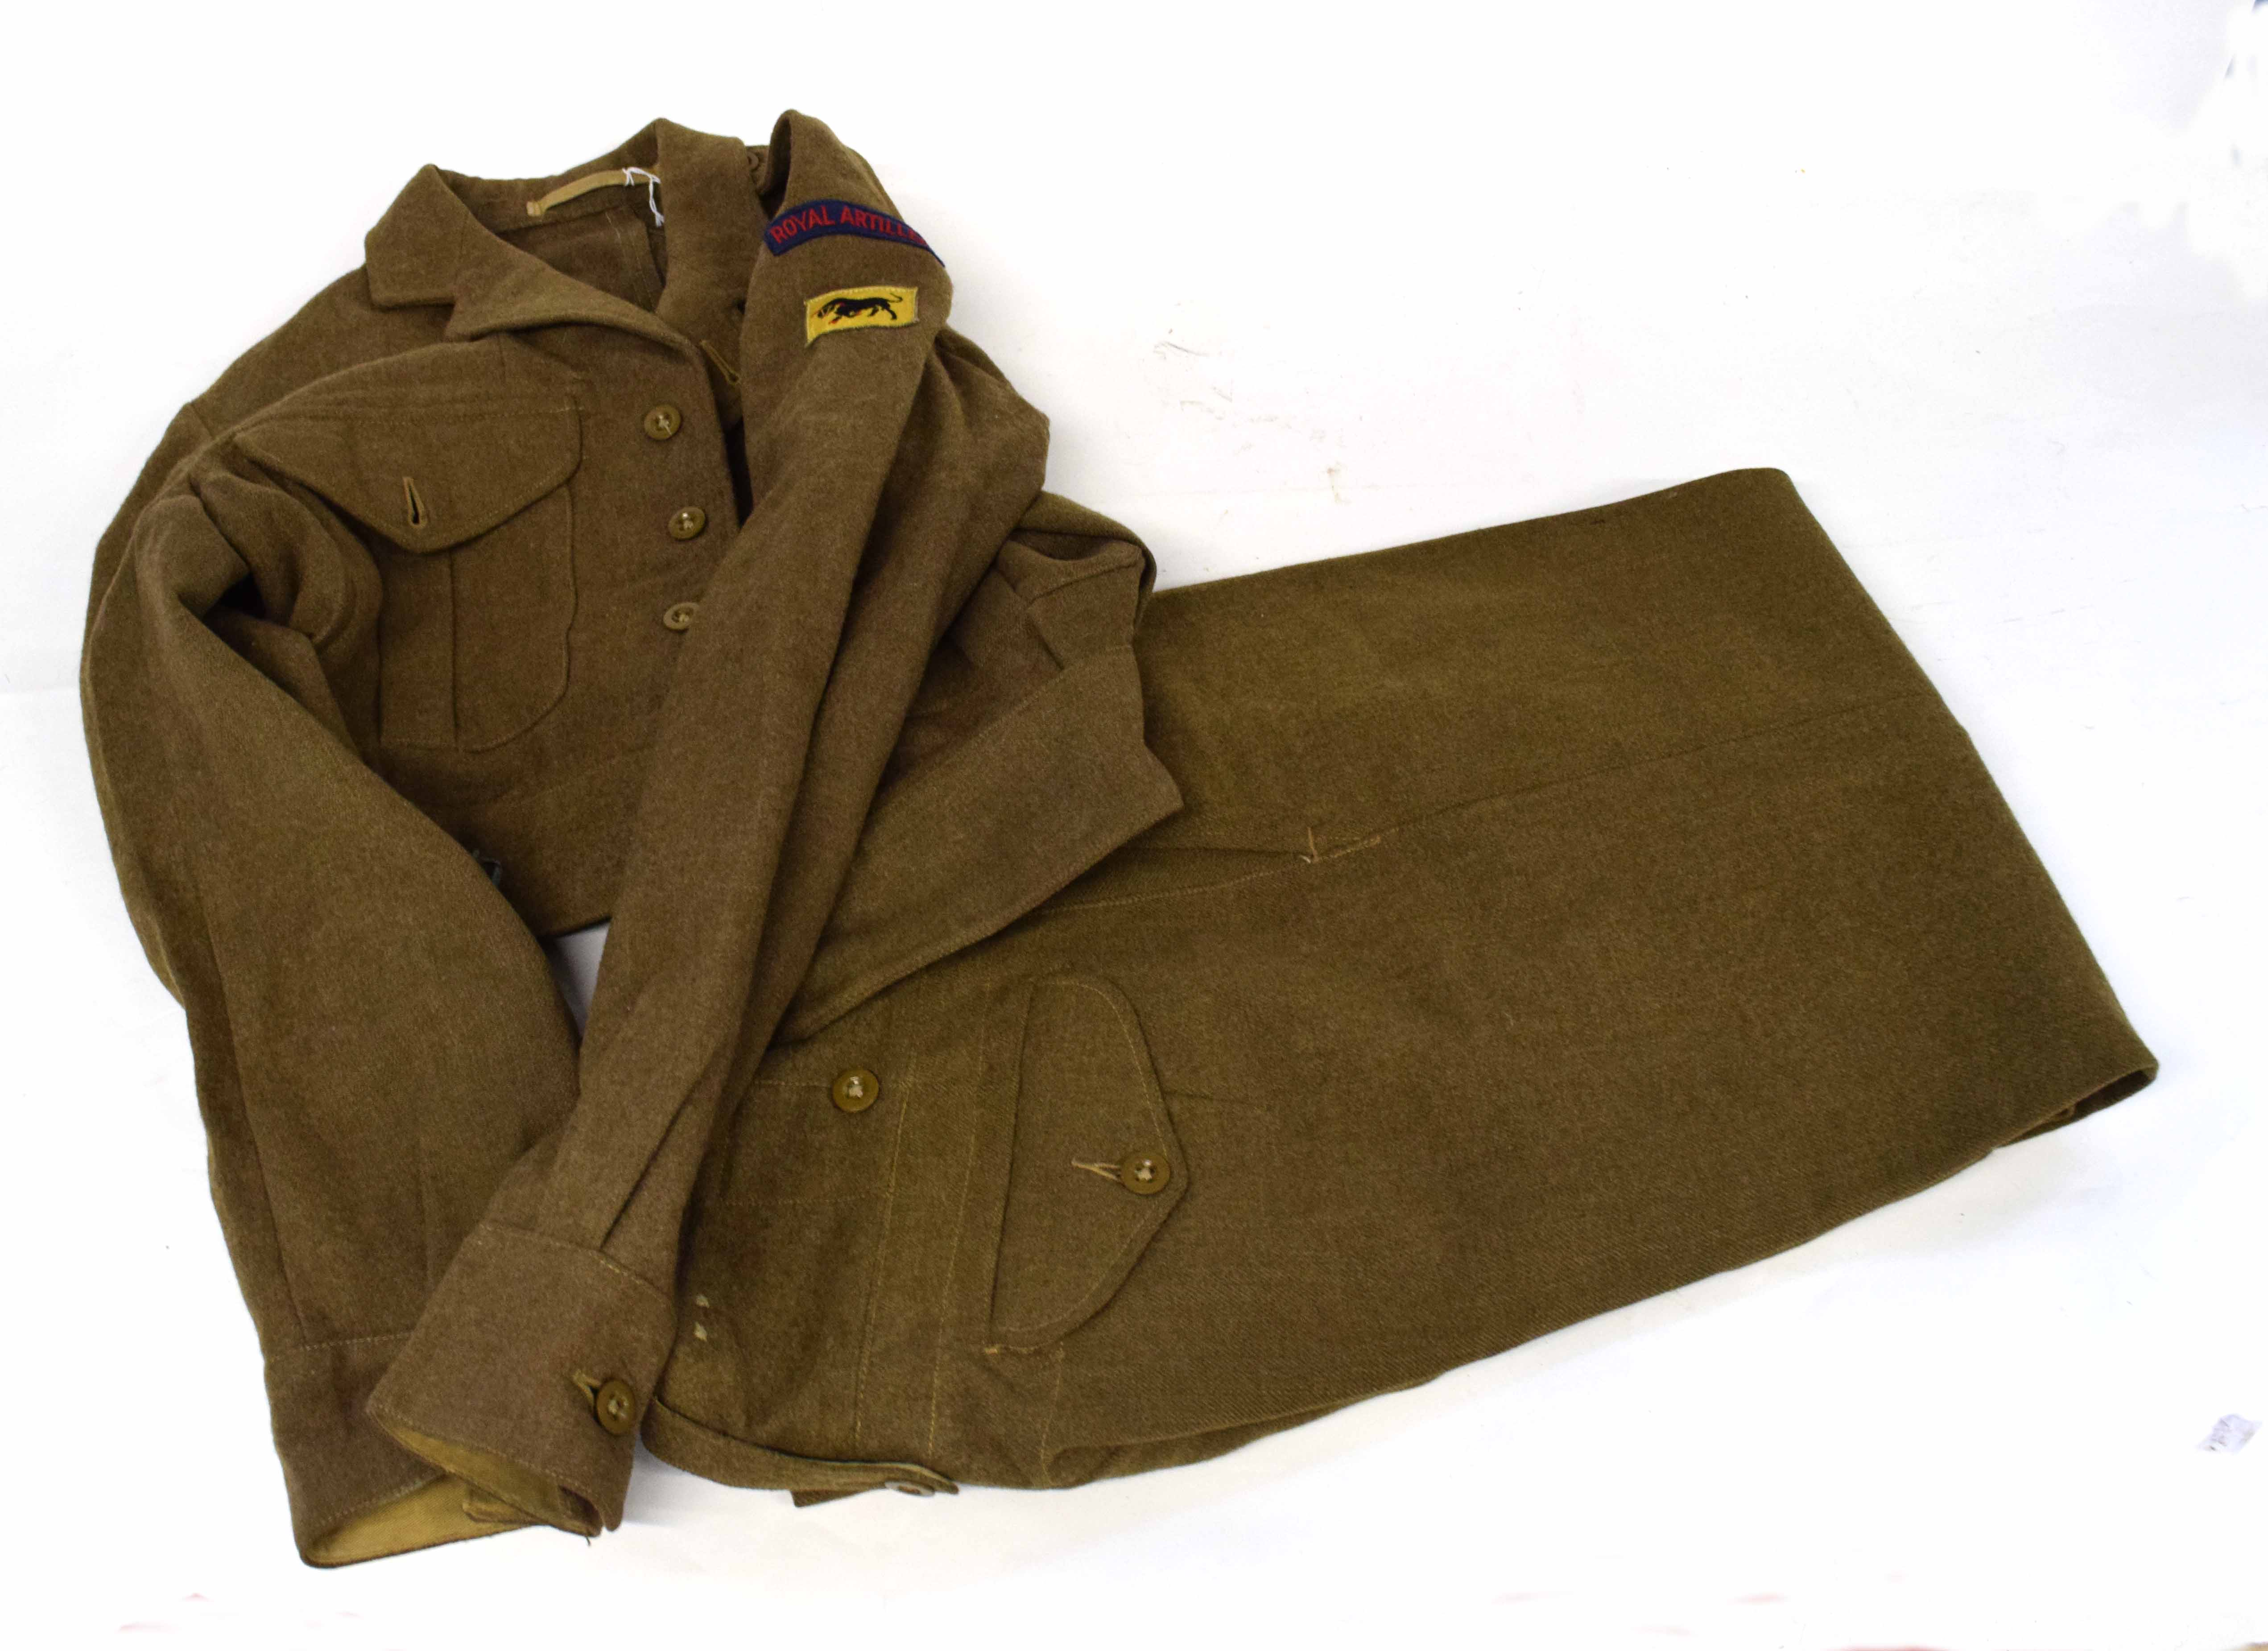 Set of battle dress 1949 pattern to include blouse dated 1952, size 8, badged up to 11th Armoured